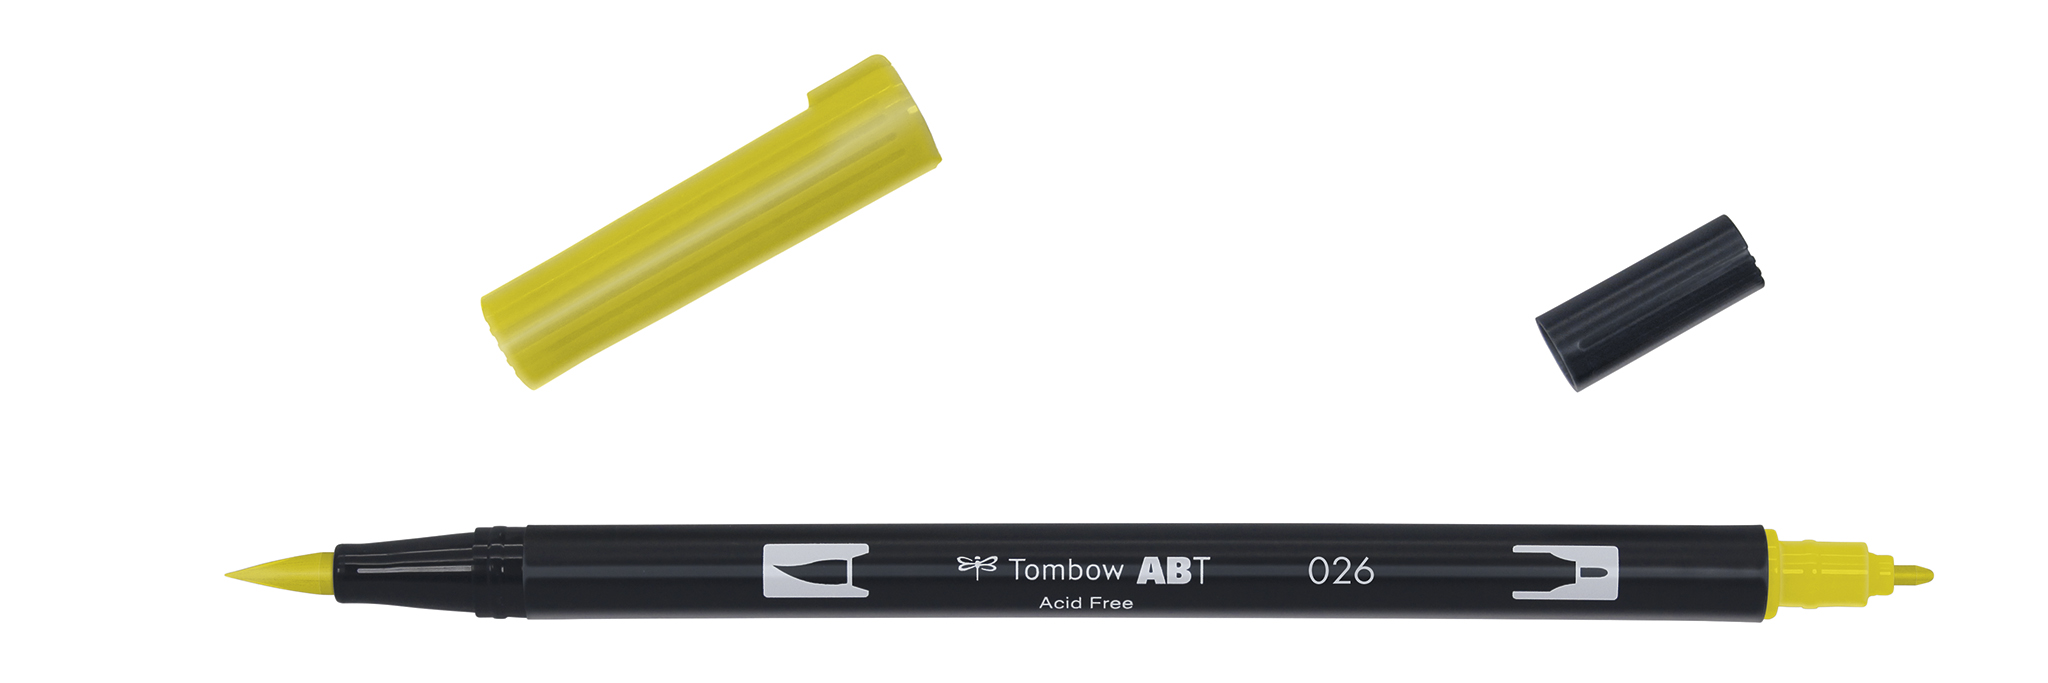 Viltpliiats Tombow ABT-026 DUAL BRUSH yellow gold